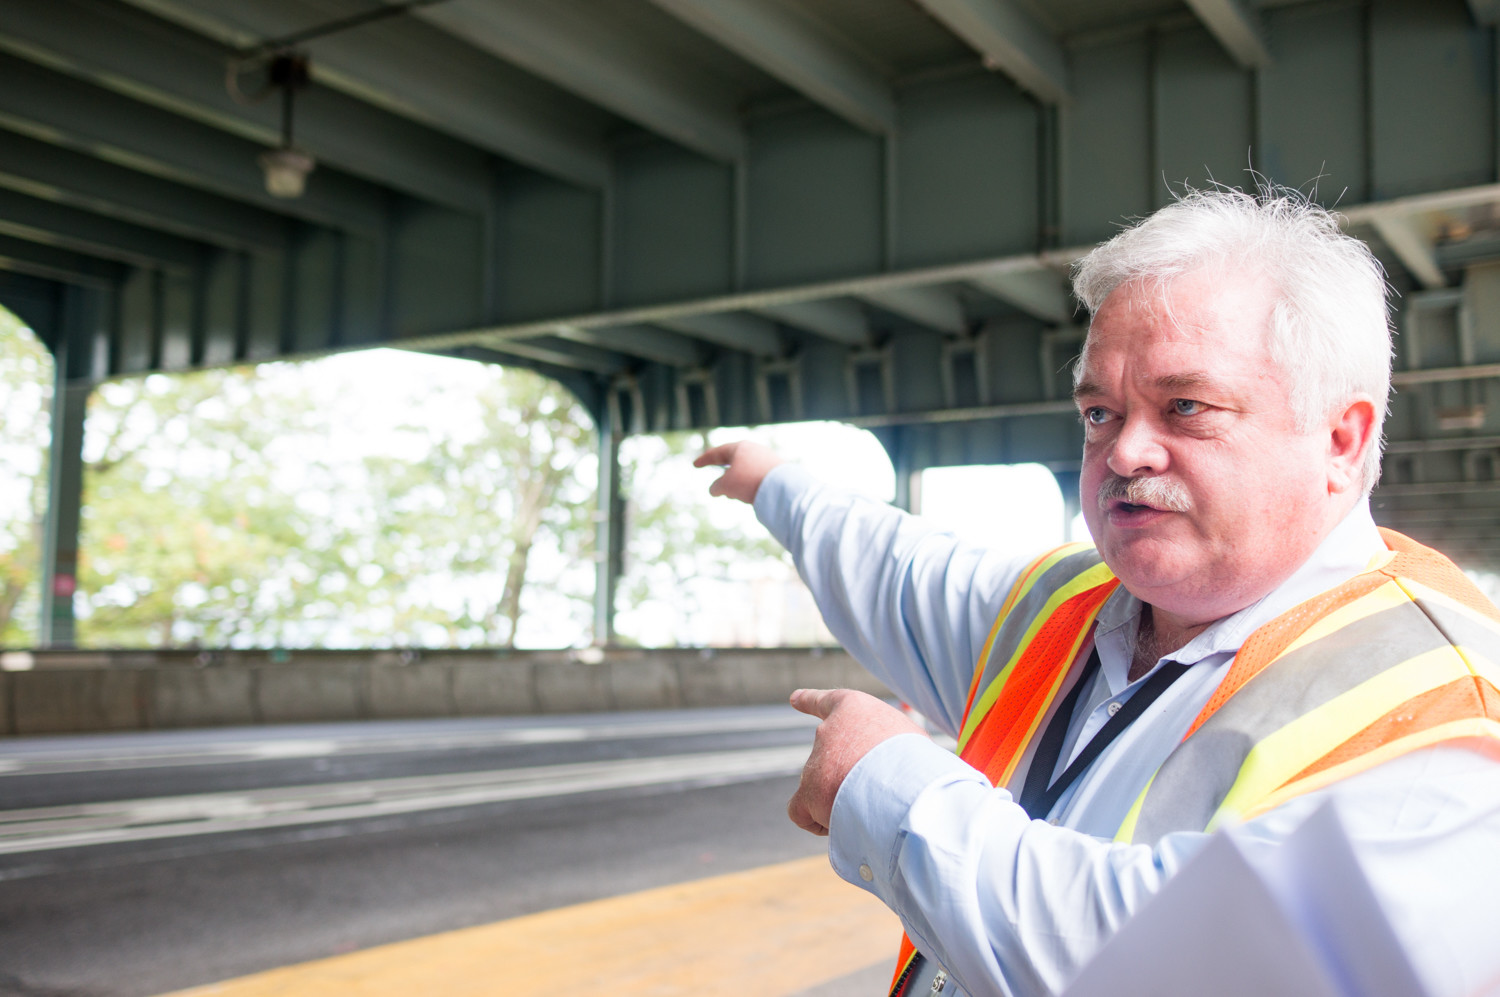 'I know how important the bridge is to the traveling public so I am motivated to make sure it is well maintained,' says William Neubauer, the Henry Hudson Bridge's facility engineer and lifelong Bronxite. As part of the rehabilitation work, one late at a time on the north and southbound levels will be closed as work is completed.